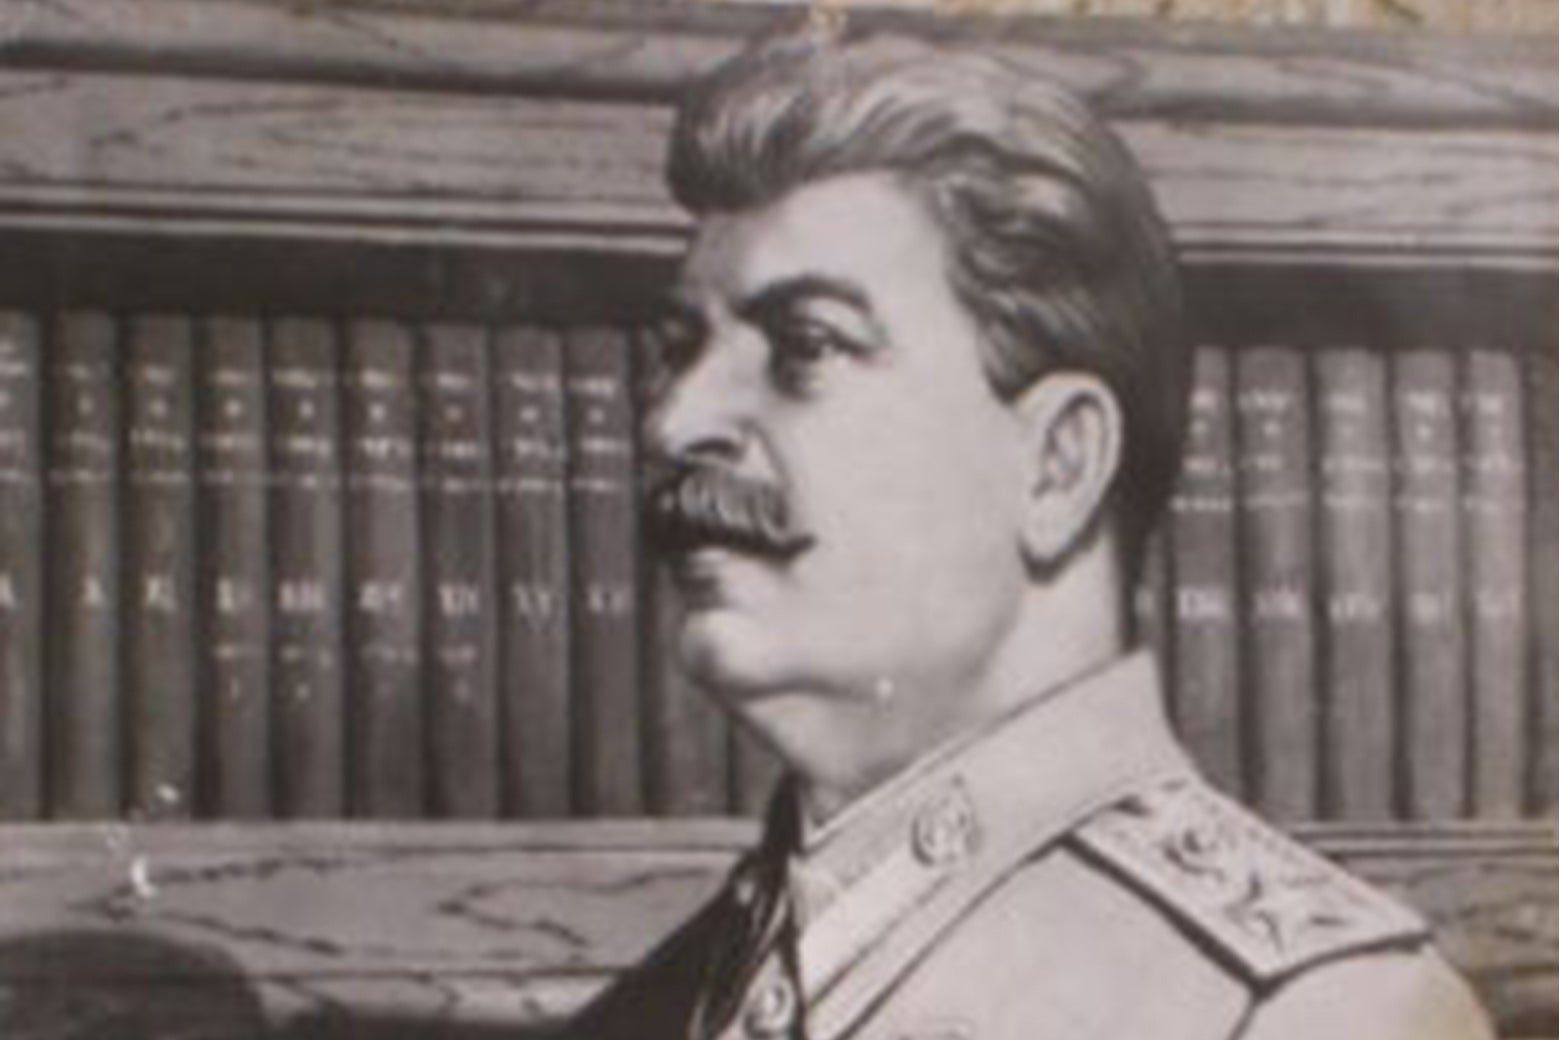 A bad portrait of Stalin.